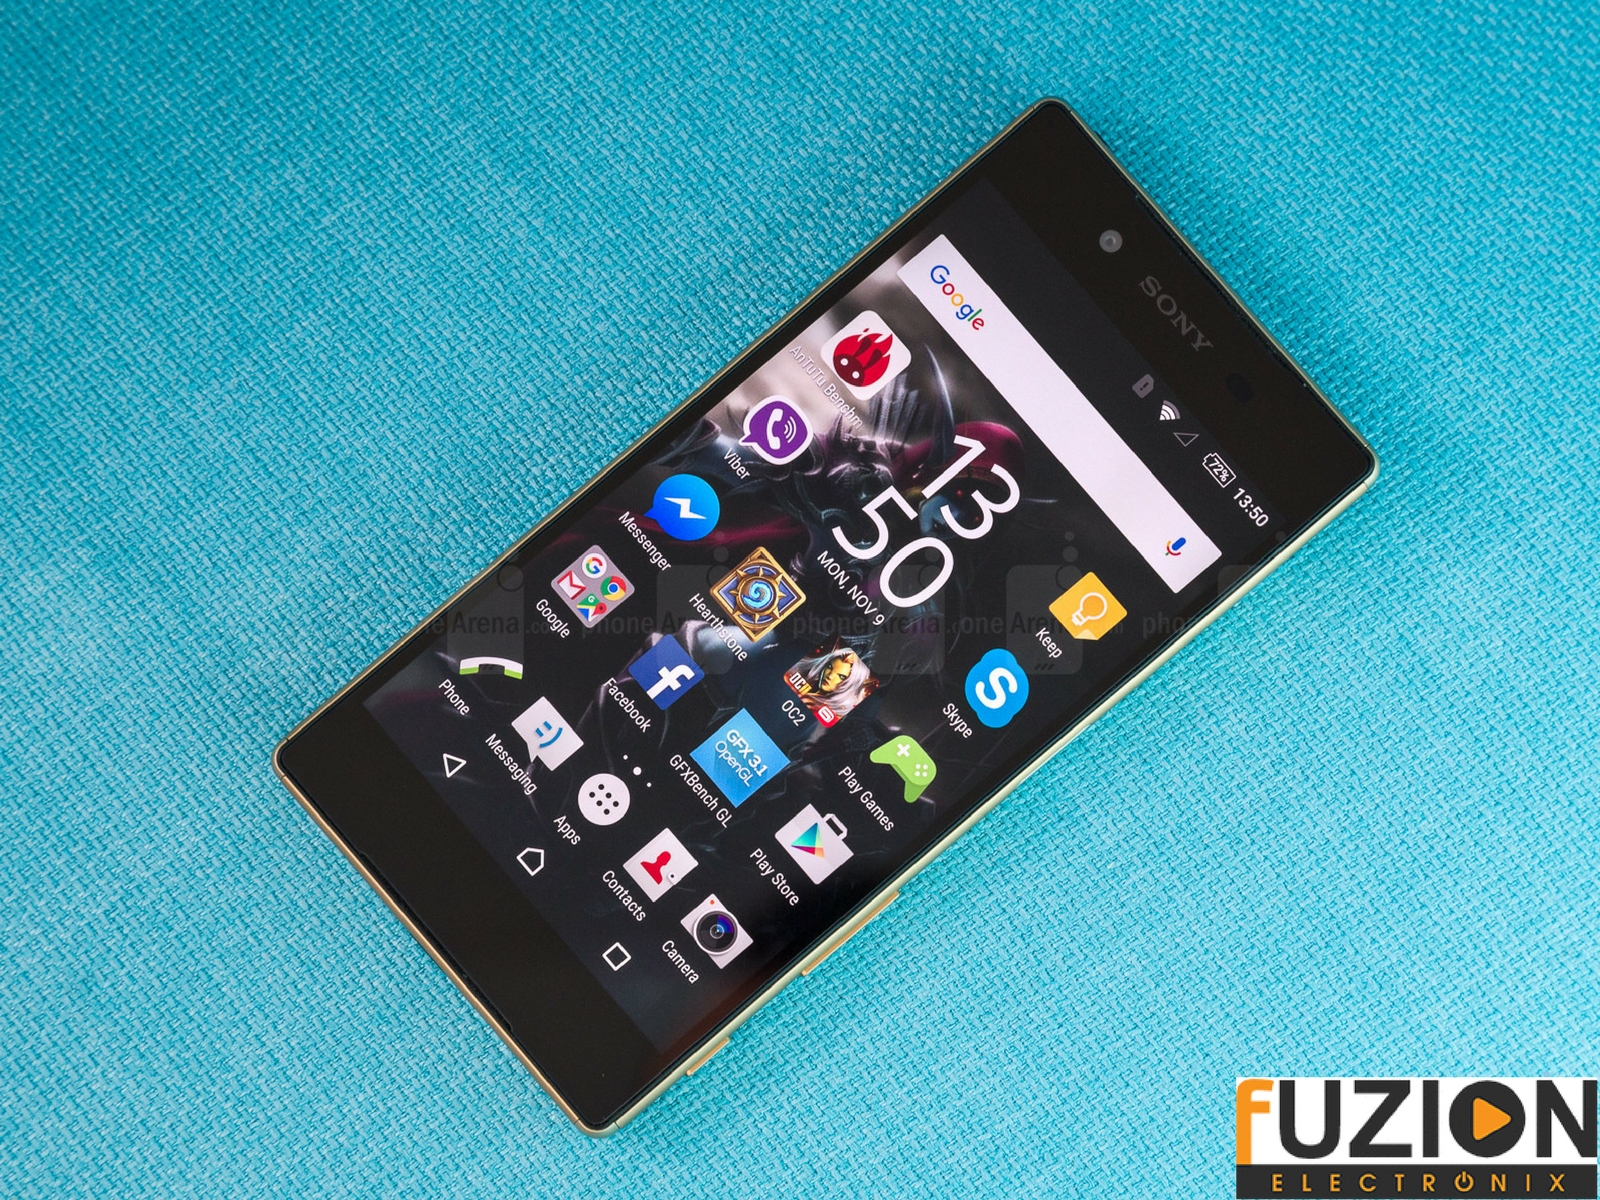 Sony Xperia X, Sony Xperia Z5 and Sony Xperia Z5 Premium: Smartphones that will win your hearts!